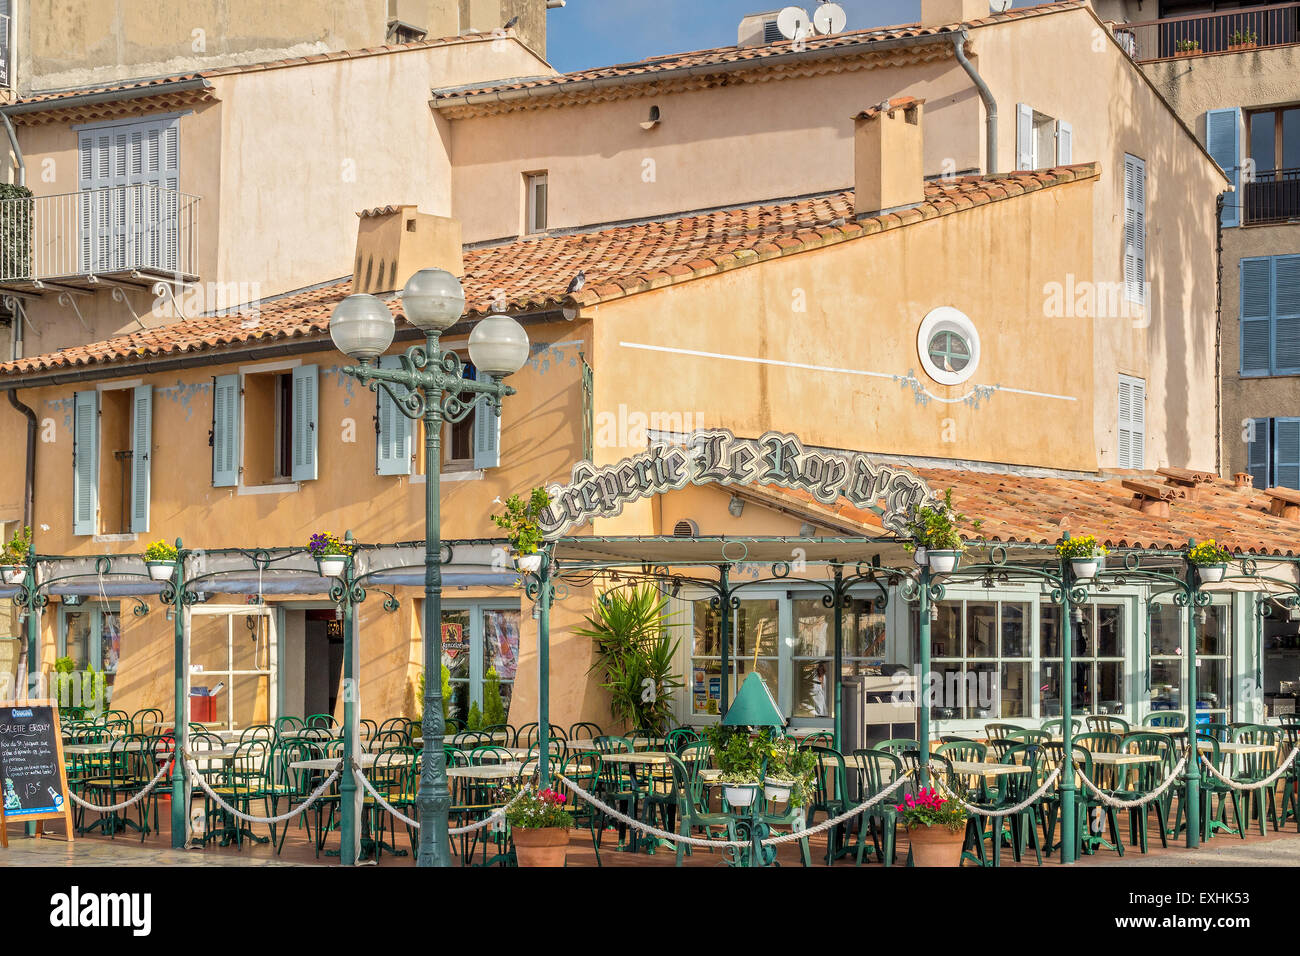 sanary sur mer france french stock photos sanary sur mer france french stock images alamy. Black Bedroom Furniture Sets. Home Design Ideas